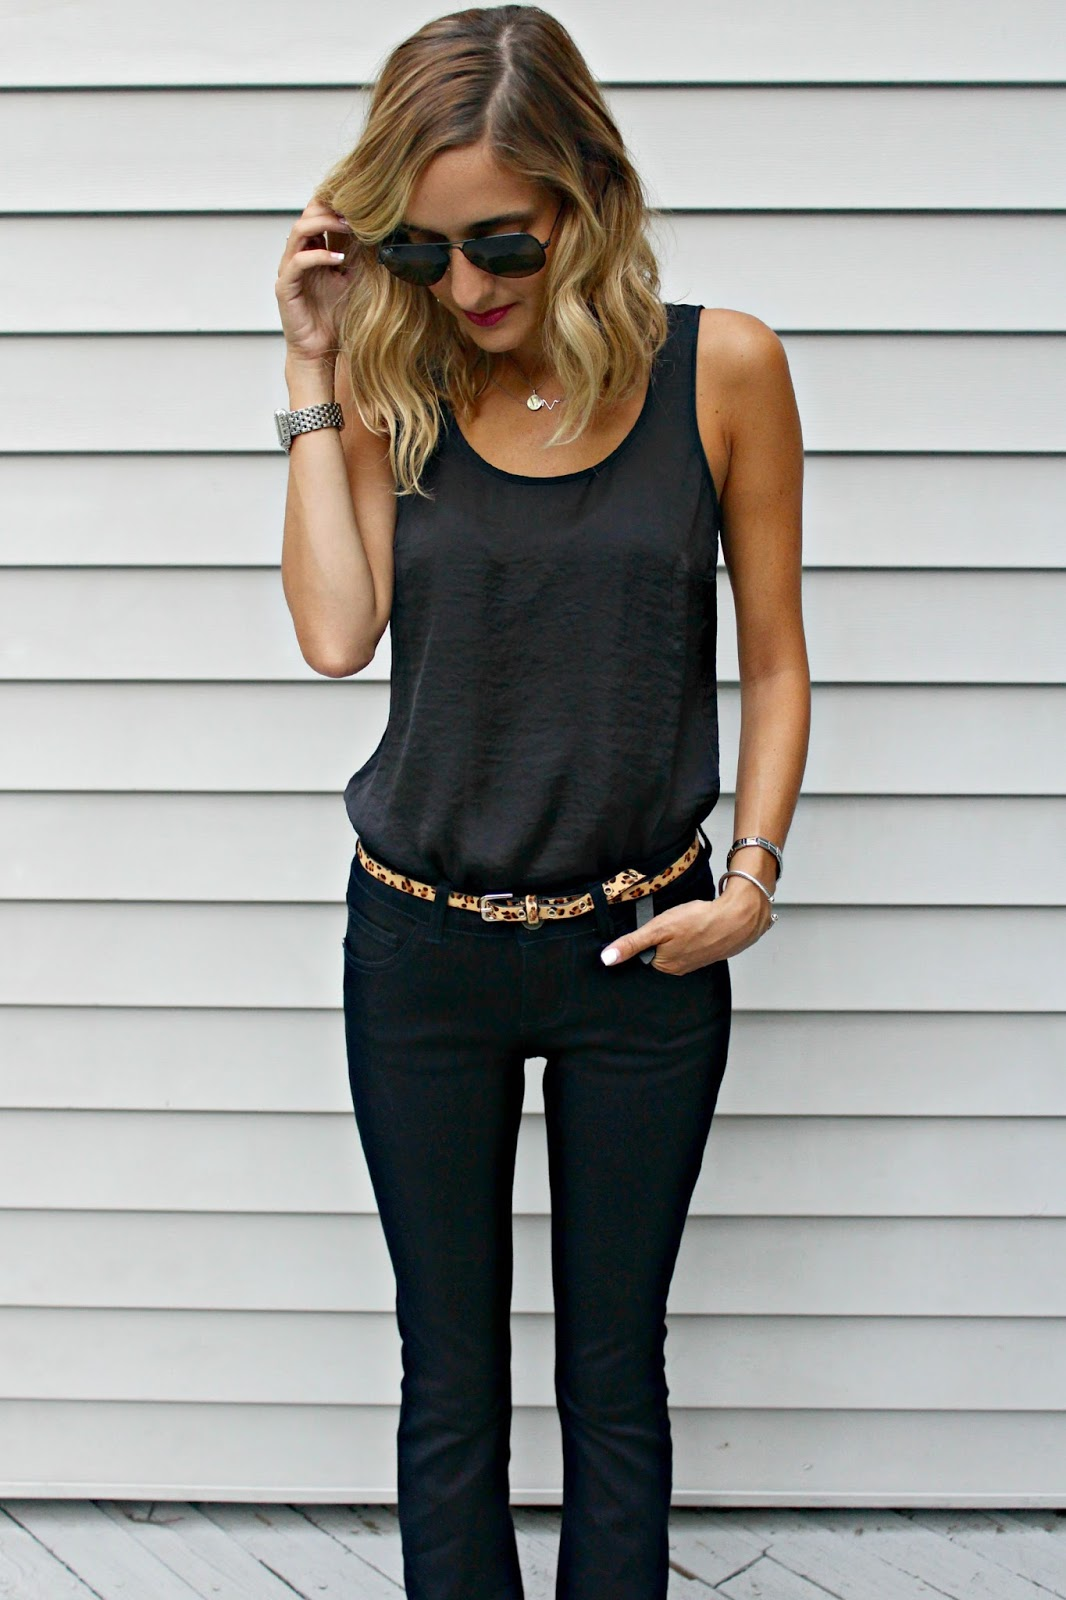 leopard belt on monochrome outfit